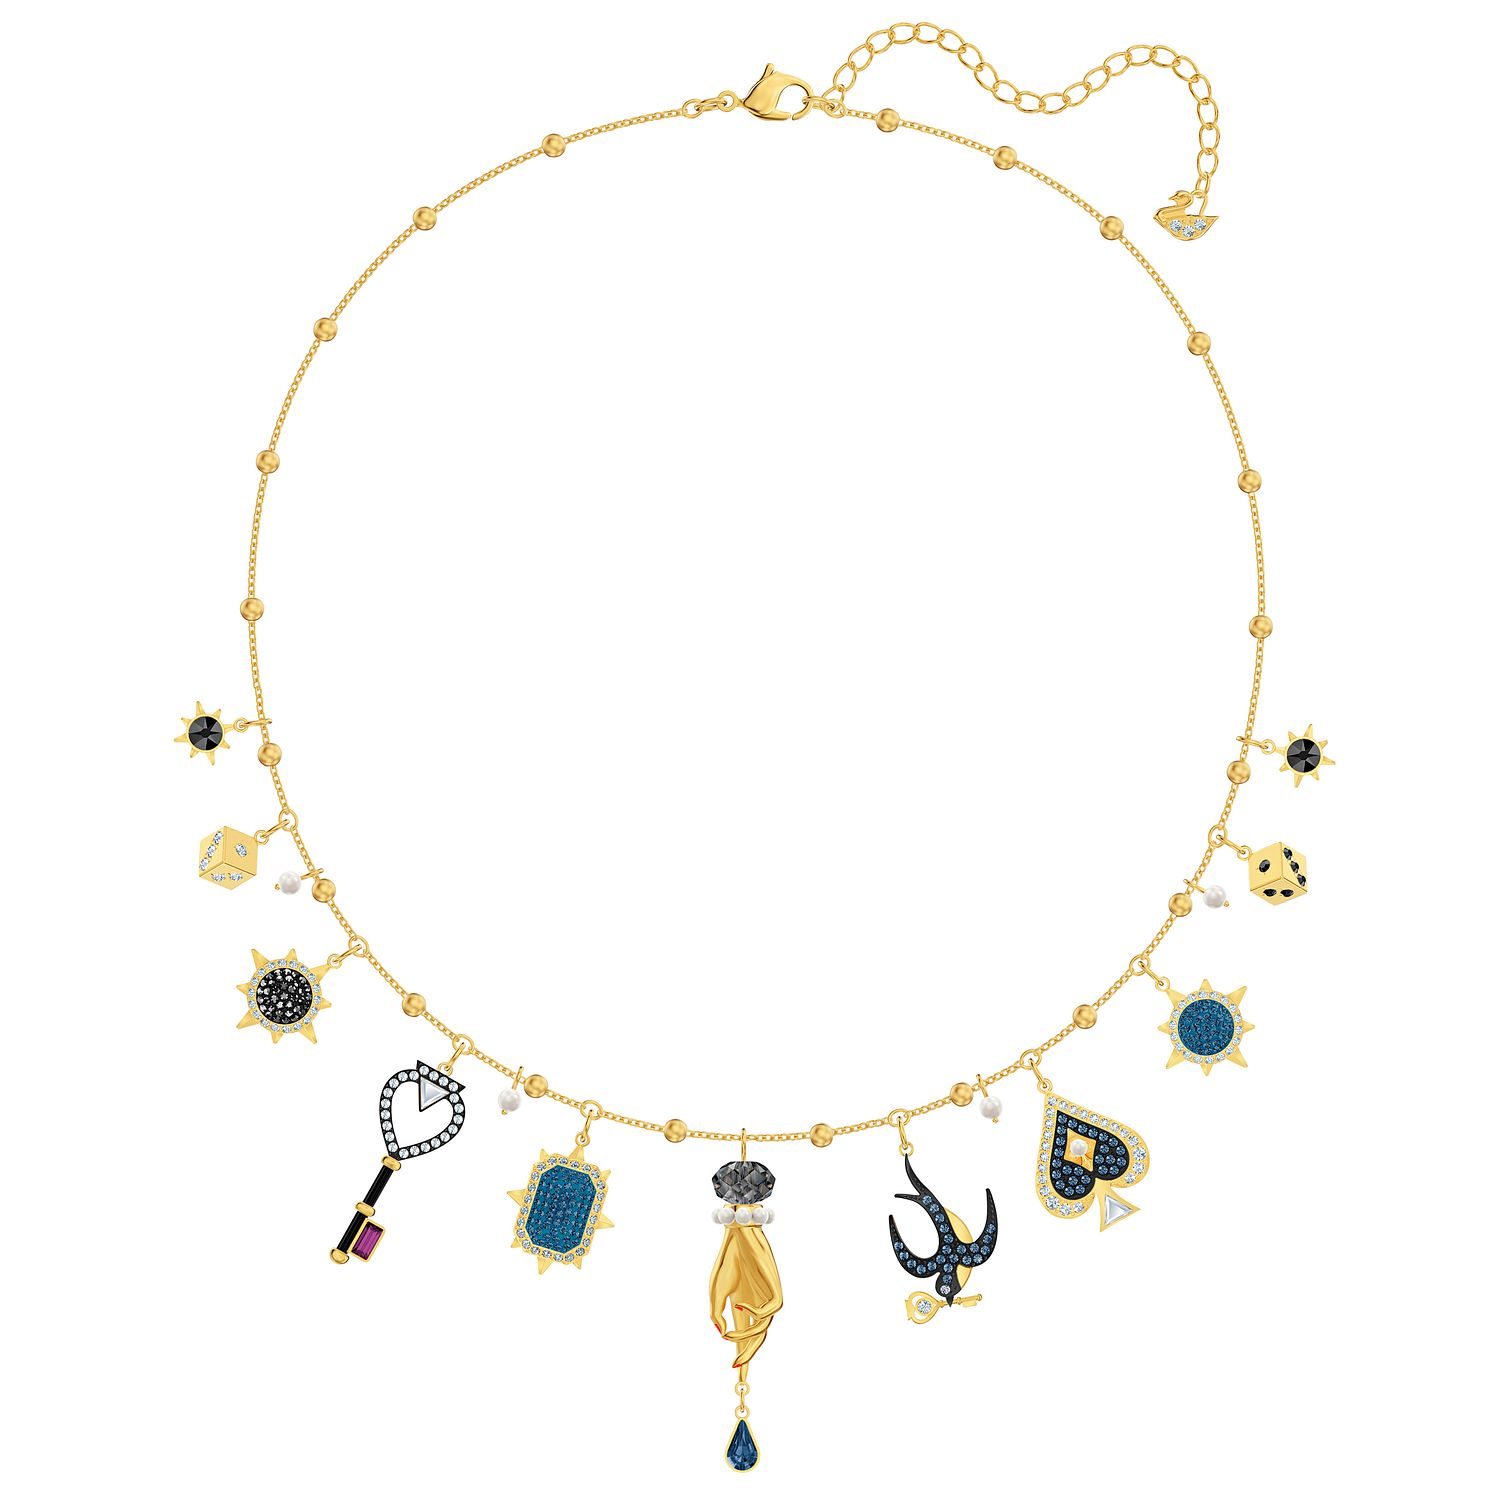 Swarovski Blue Tarot Magic Gold Tone Charm Necklace - Product number 4624963